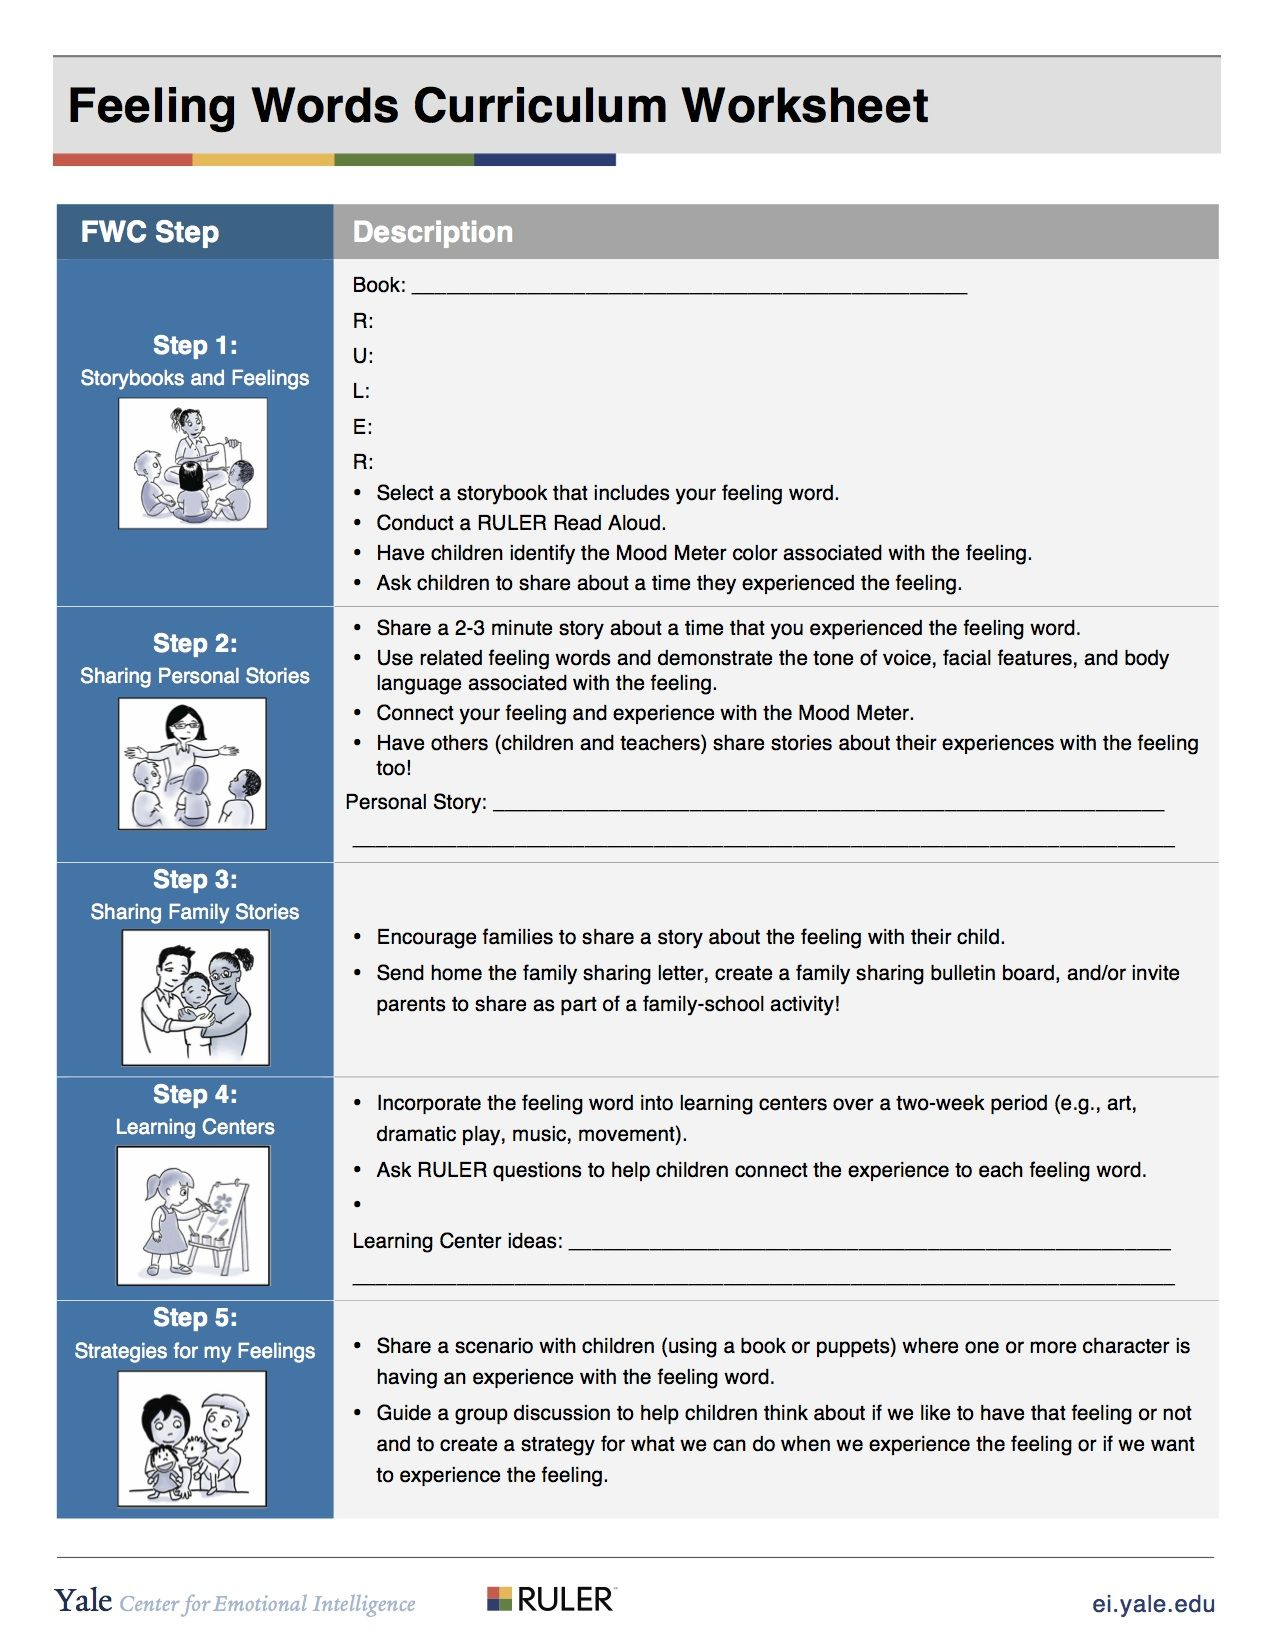 Fwc Steps Worksheet Preschool